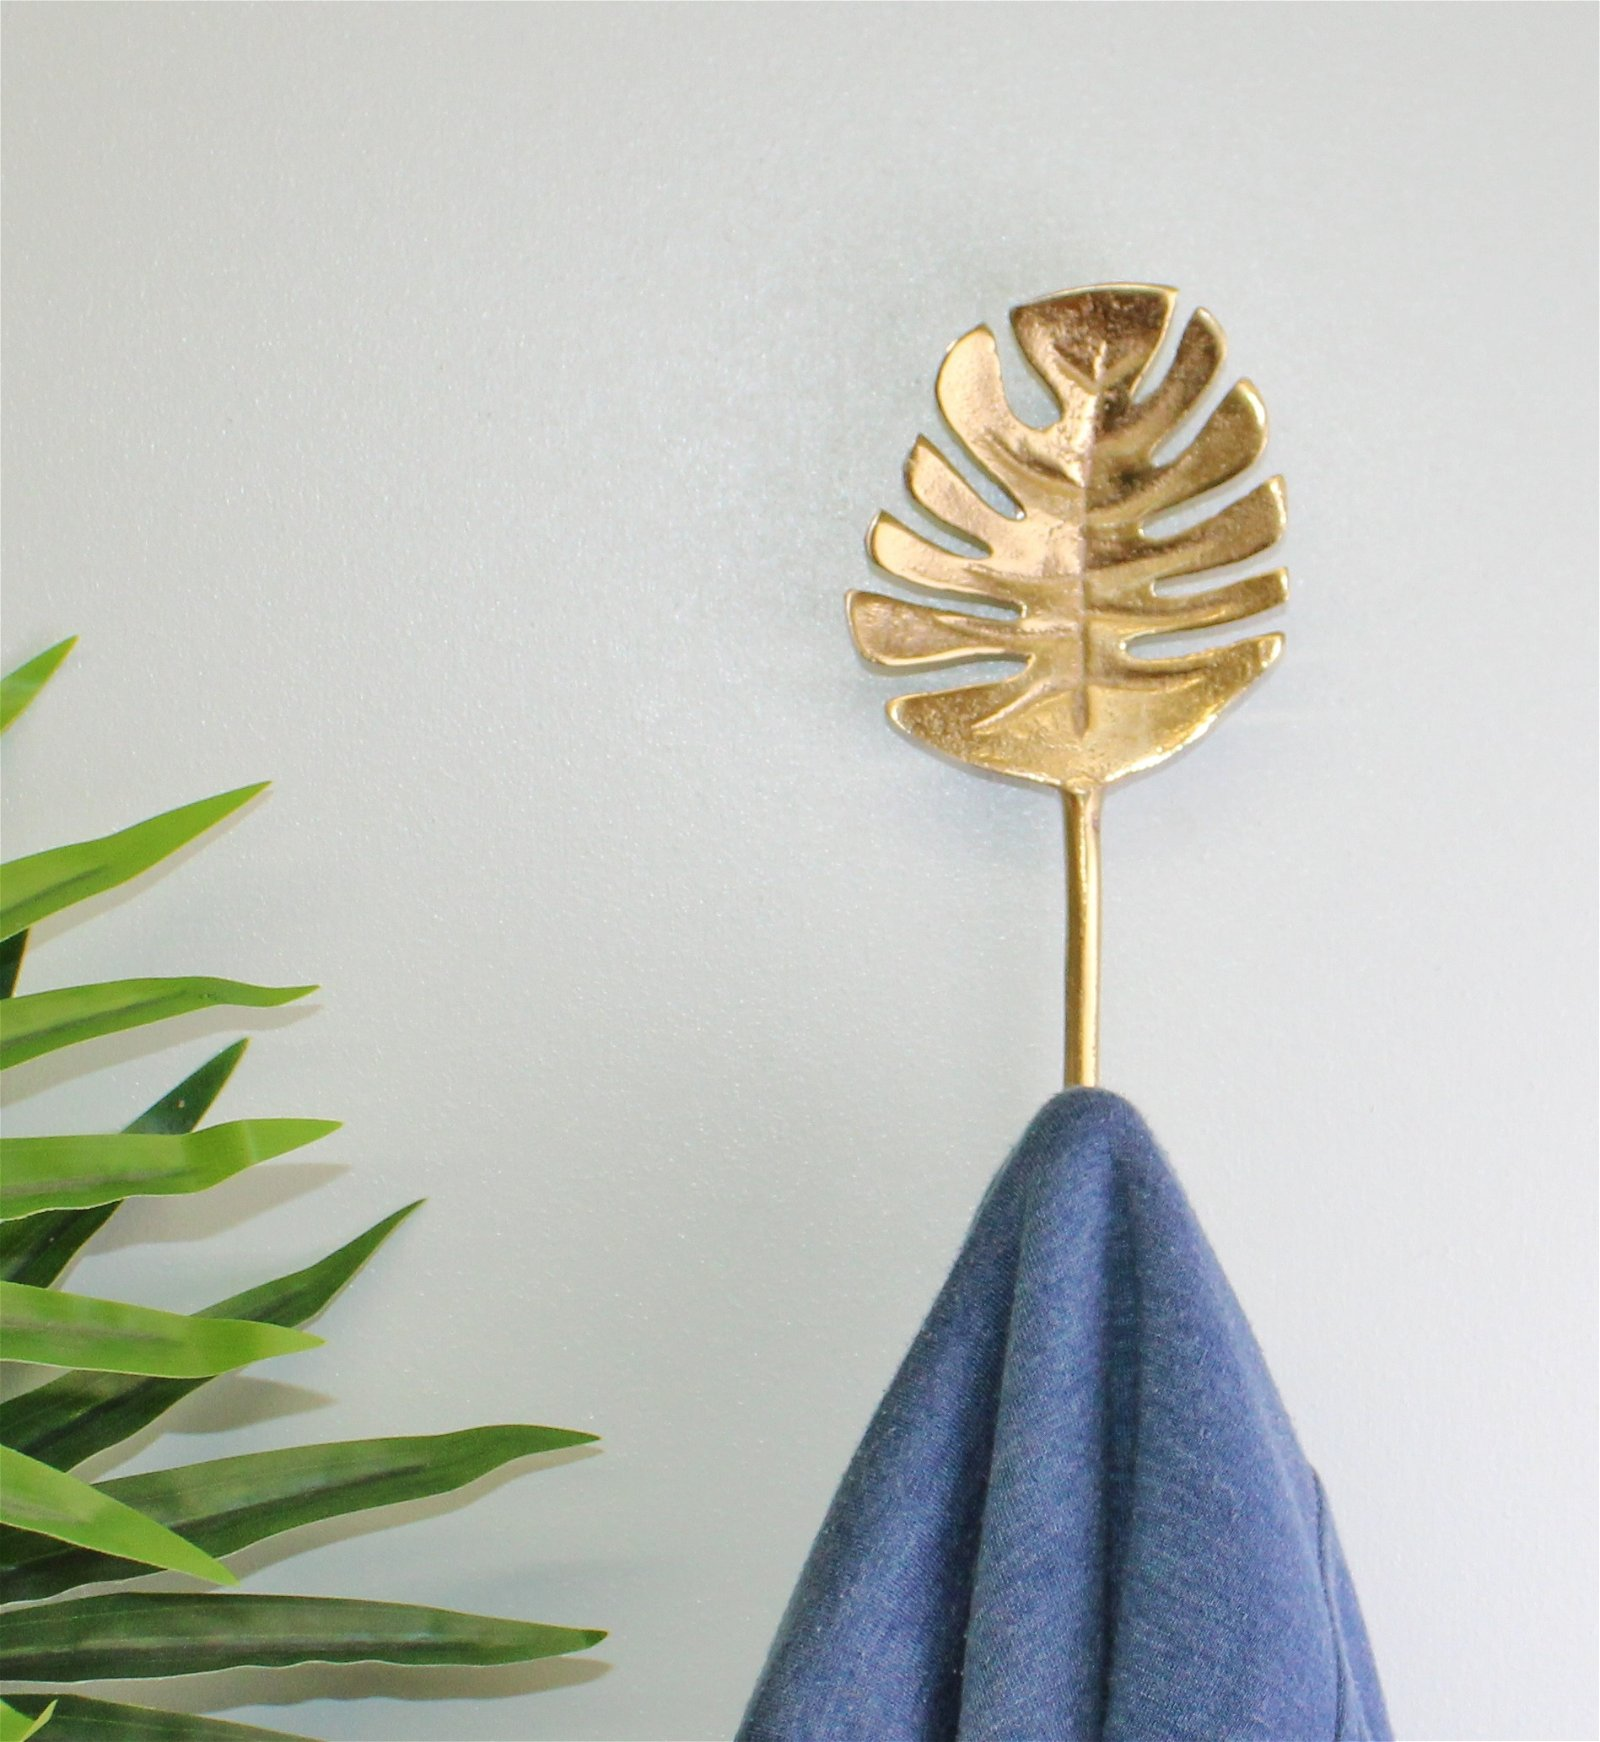 Gold Metal Palm Leaf Coat Hook